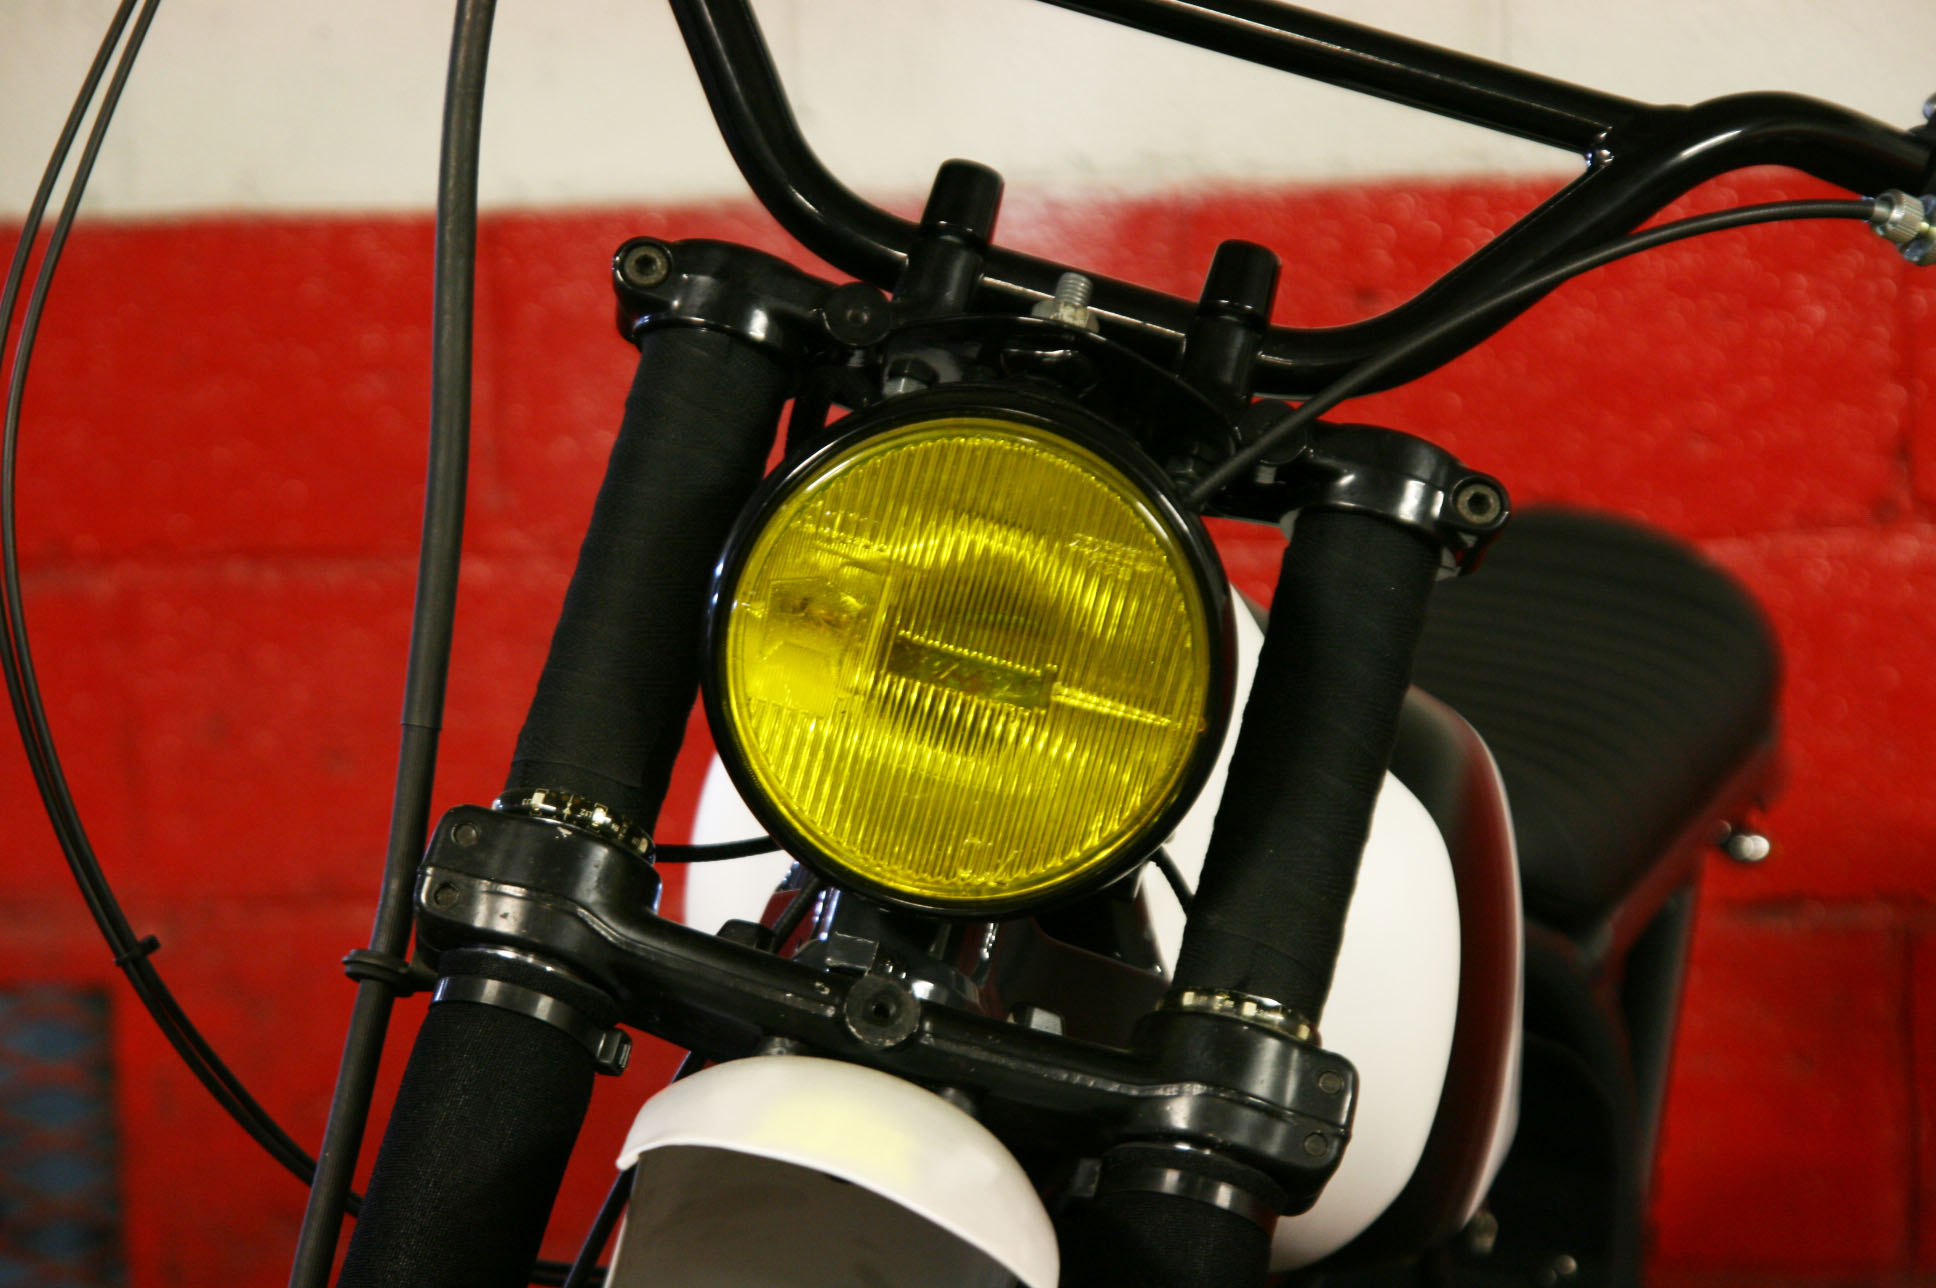 - Vintage headlight from a 70's rally car installed (comes in yellow genuinely);  - motocross type handlebar.